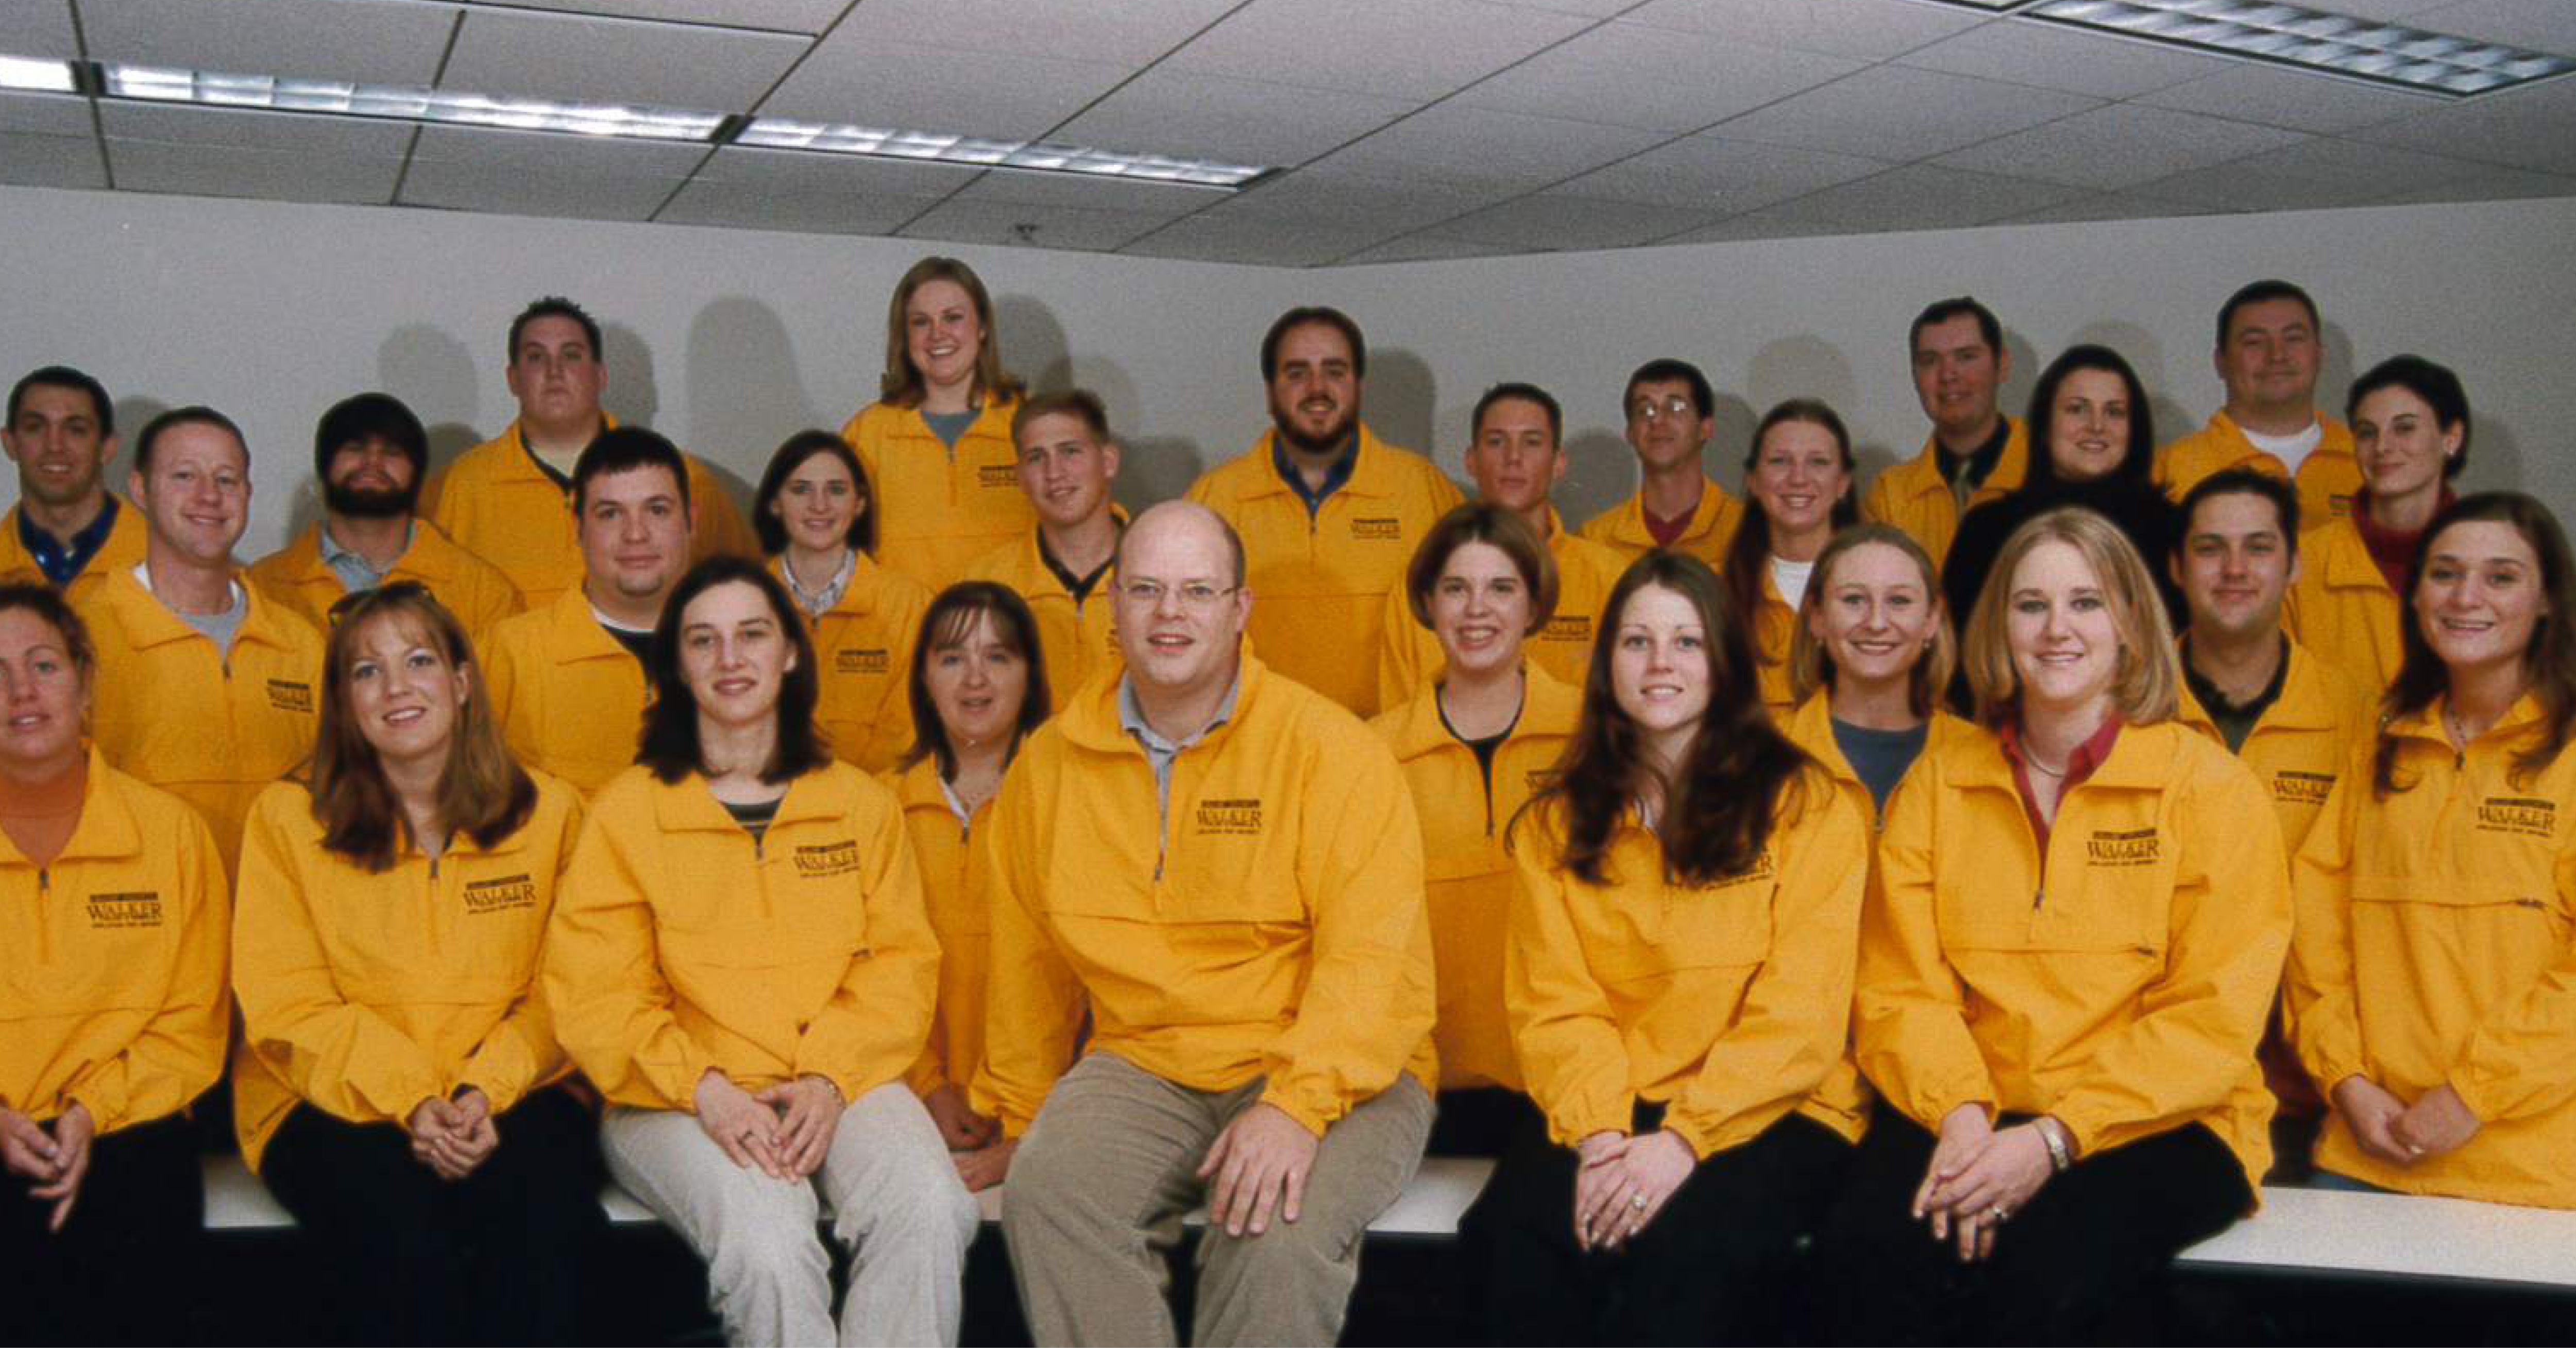 Club leaders formed the 2003 Dean's Council of Student Advisors